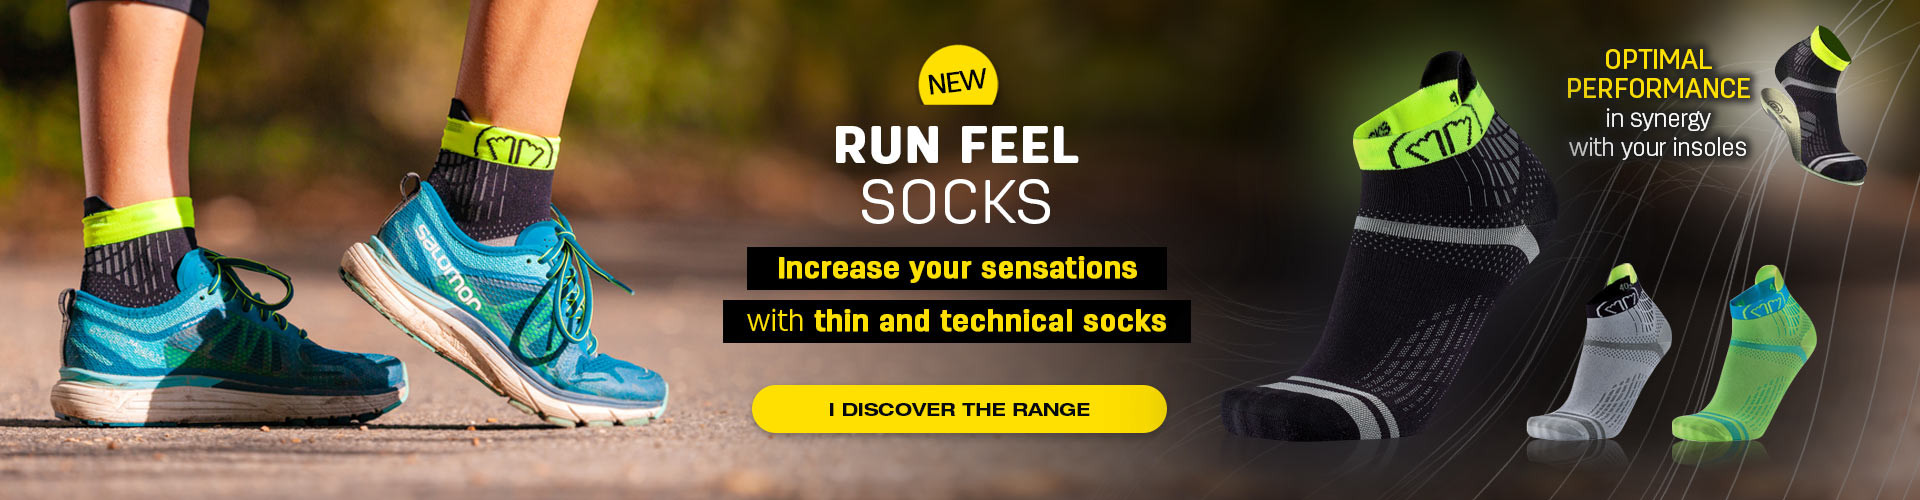 Discover our new running socks, thin and technicals!